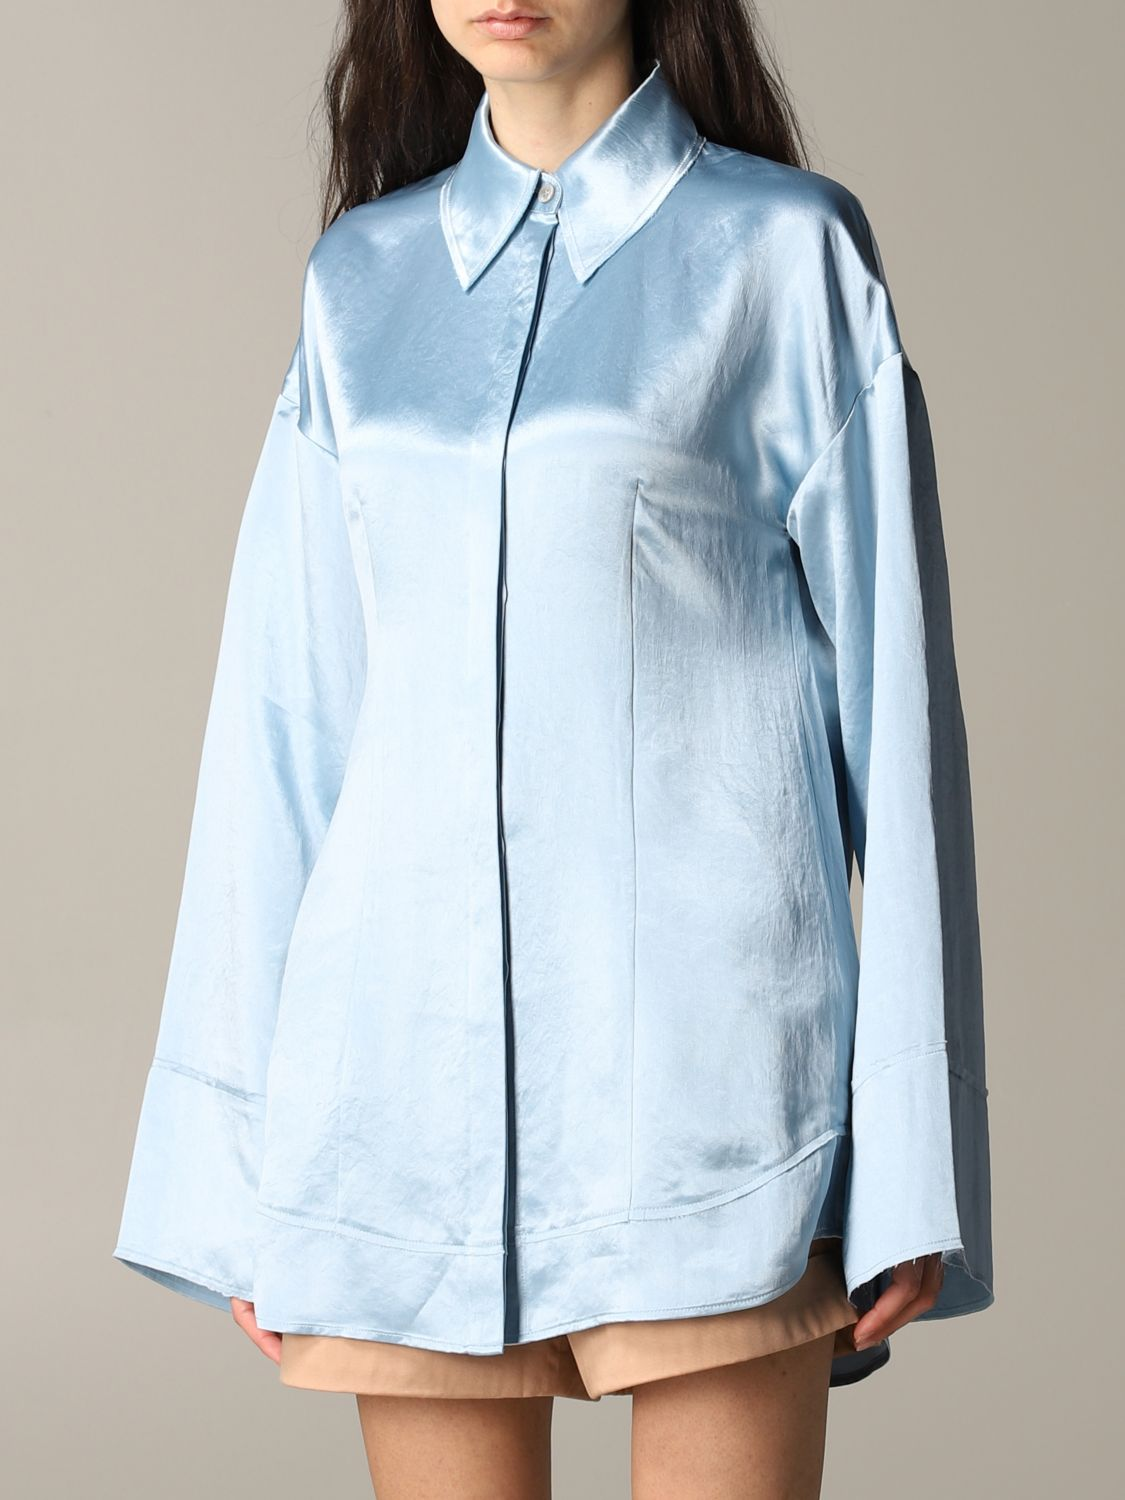 Shirt Acne Studios: Acne Studios wide shirt gnawed blue 4